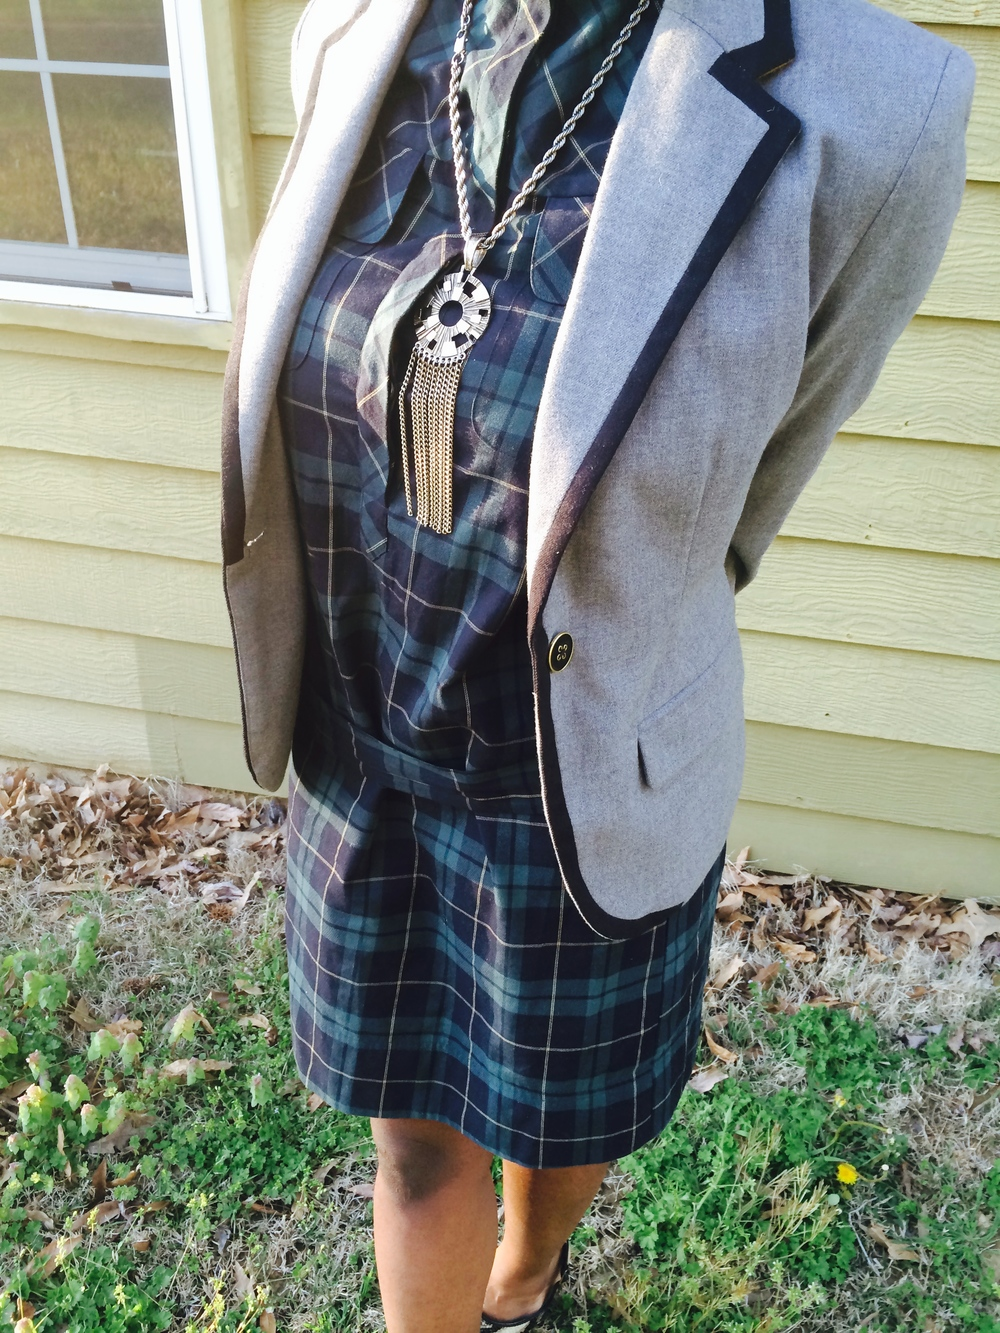 outfit details- dress: Southern Thrift; blazer: Target: shoes: Kenneth Cole c/o TJ Maxx